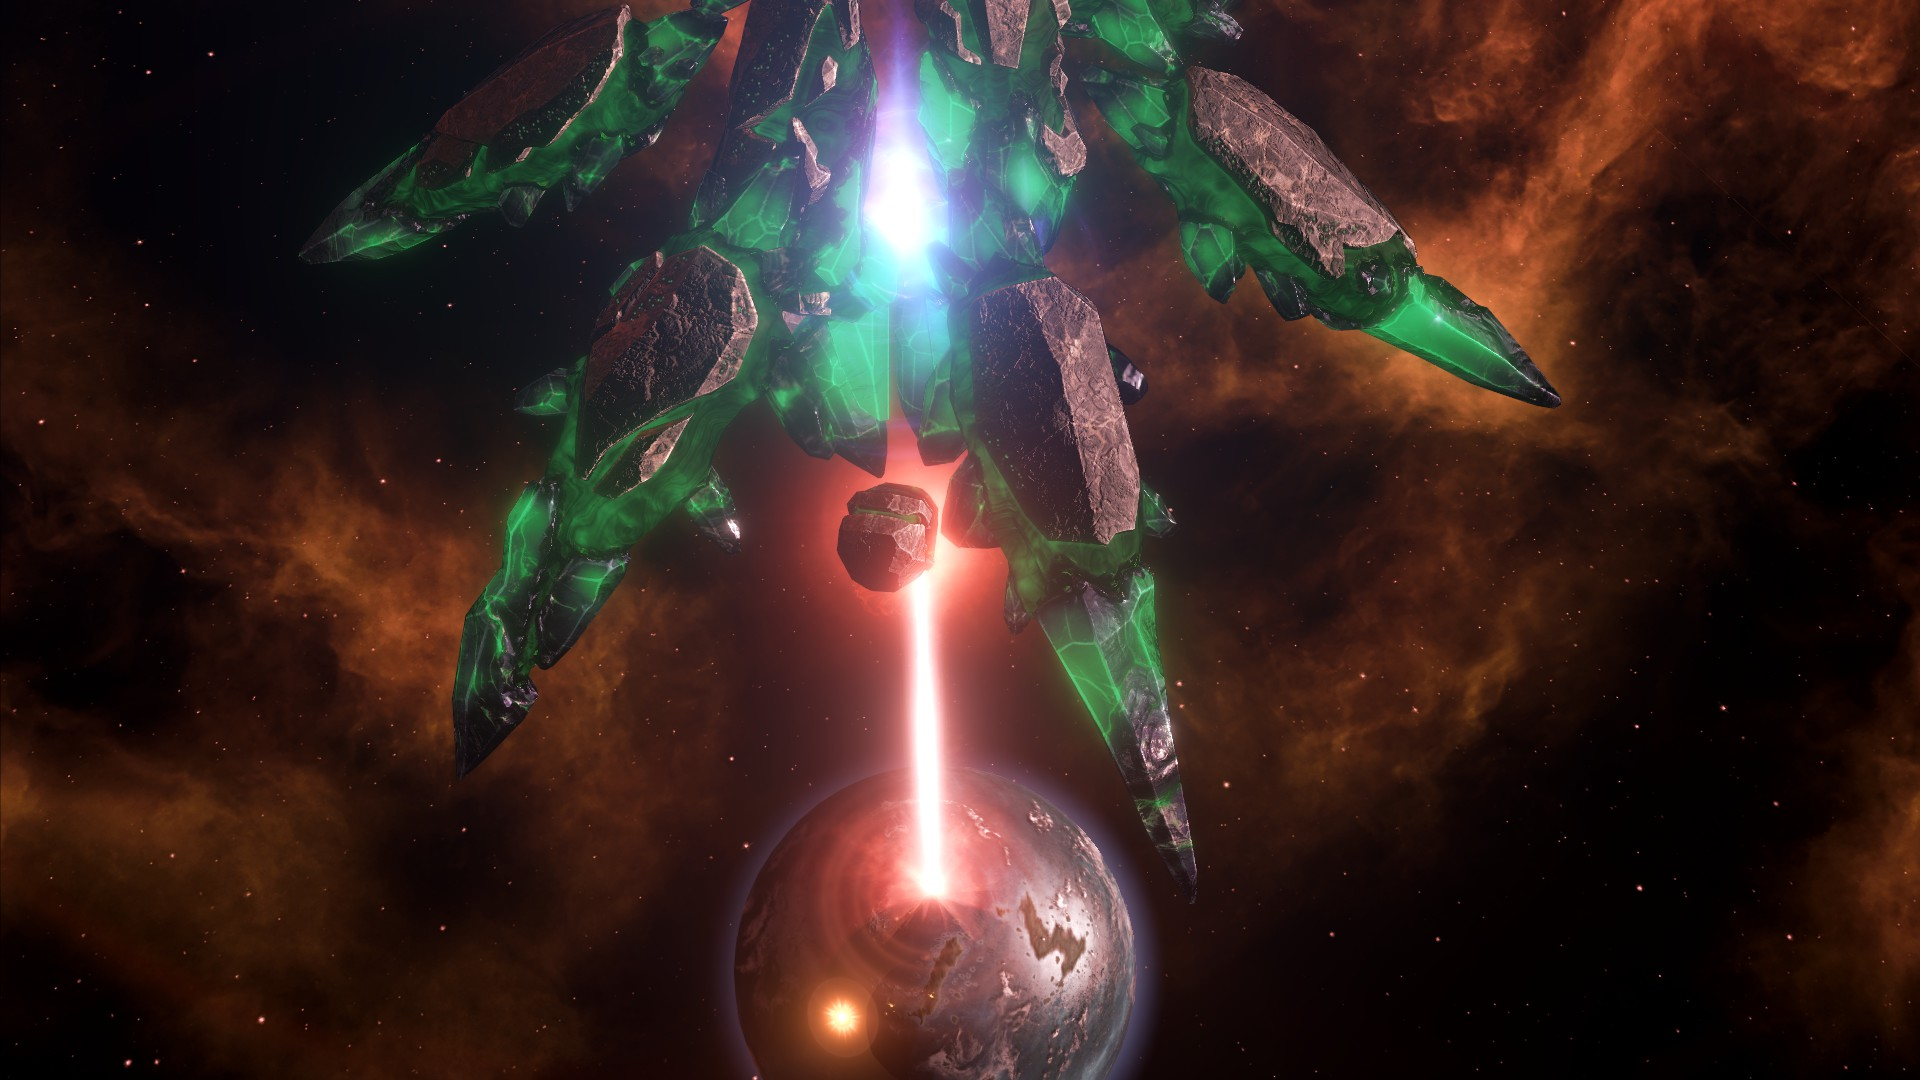 Stellaris will let you engage in the completely legitimate activity of arming insurgents in other empires